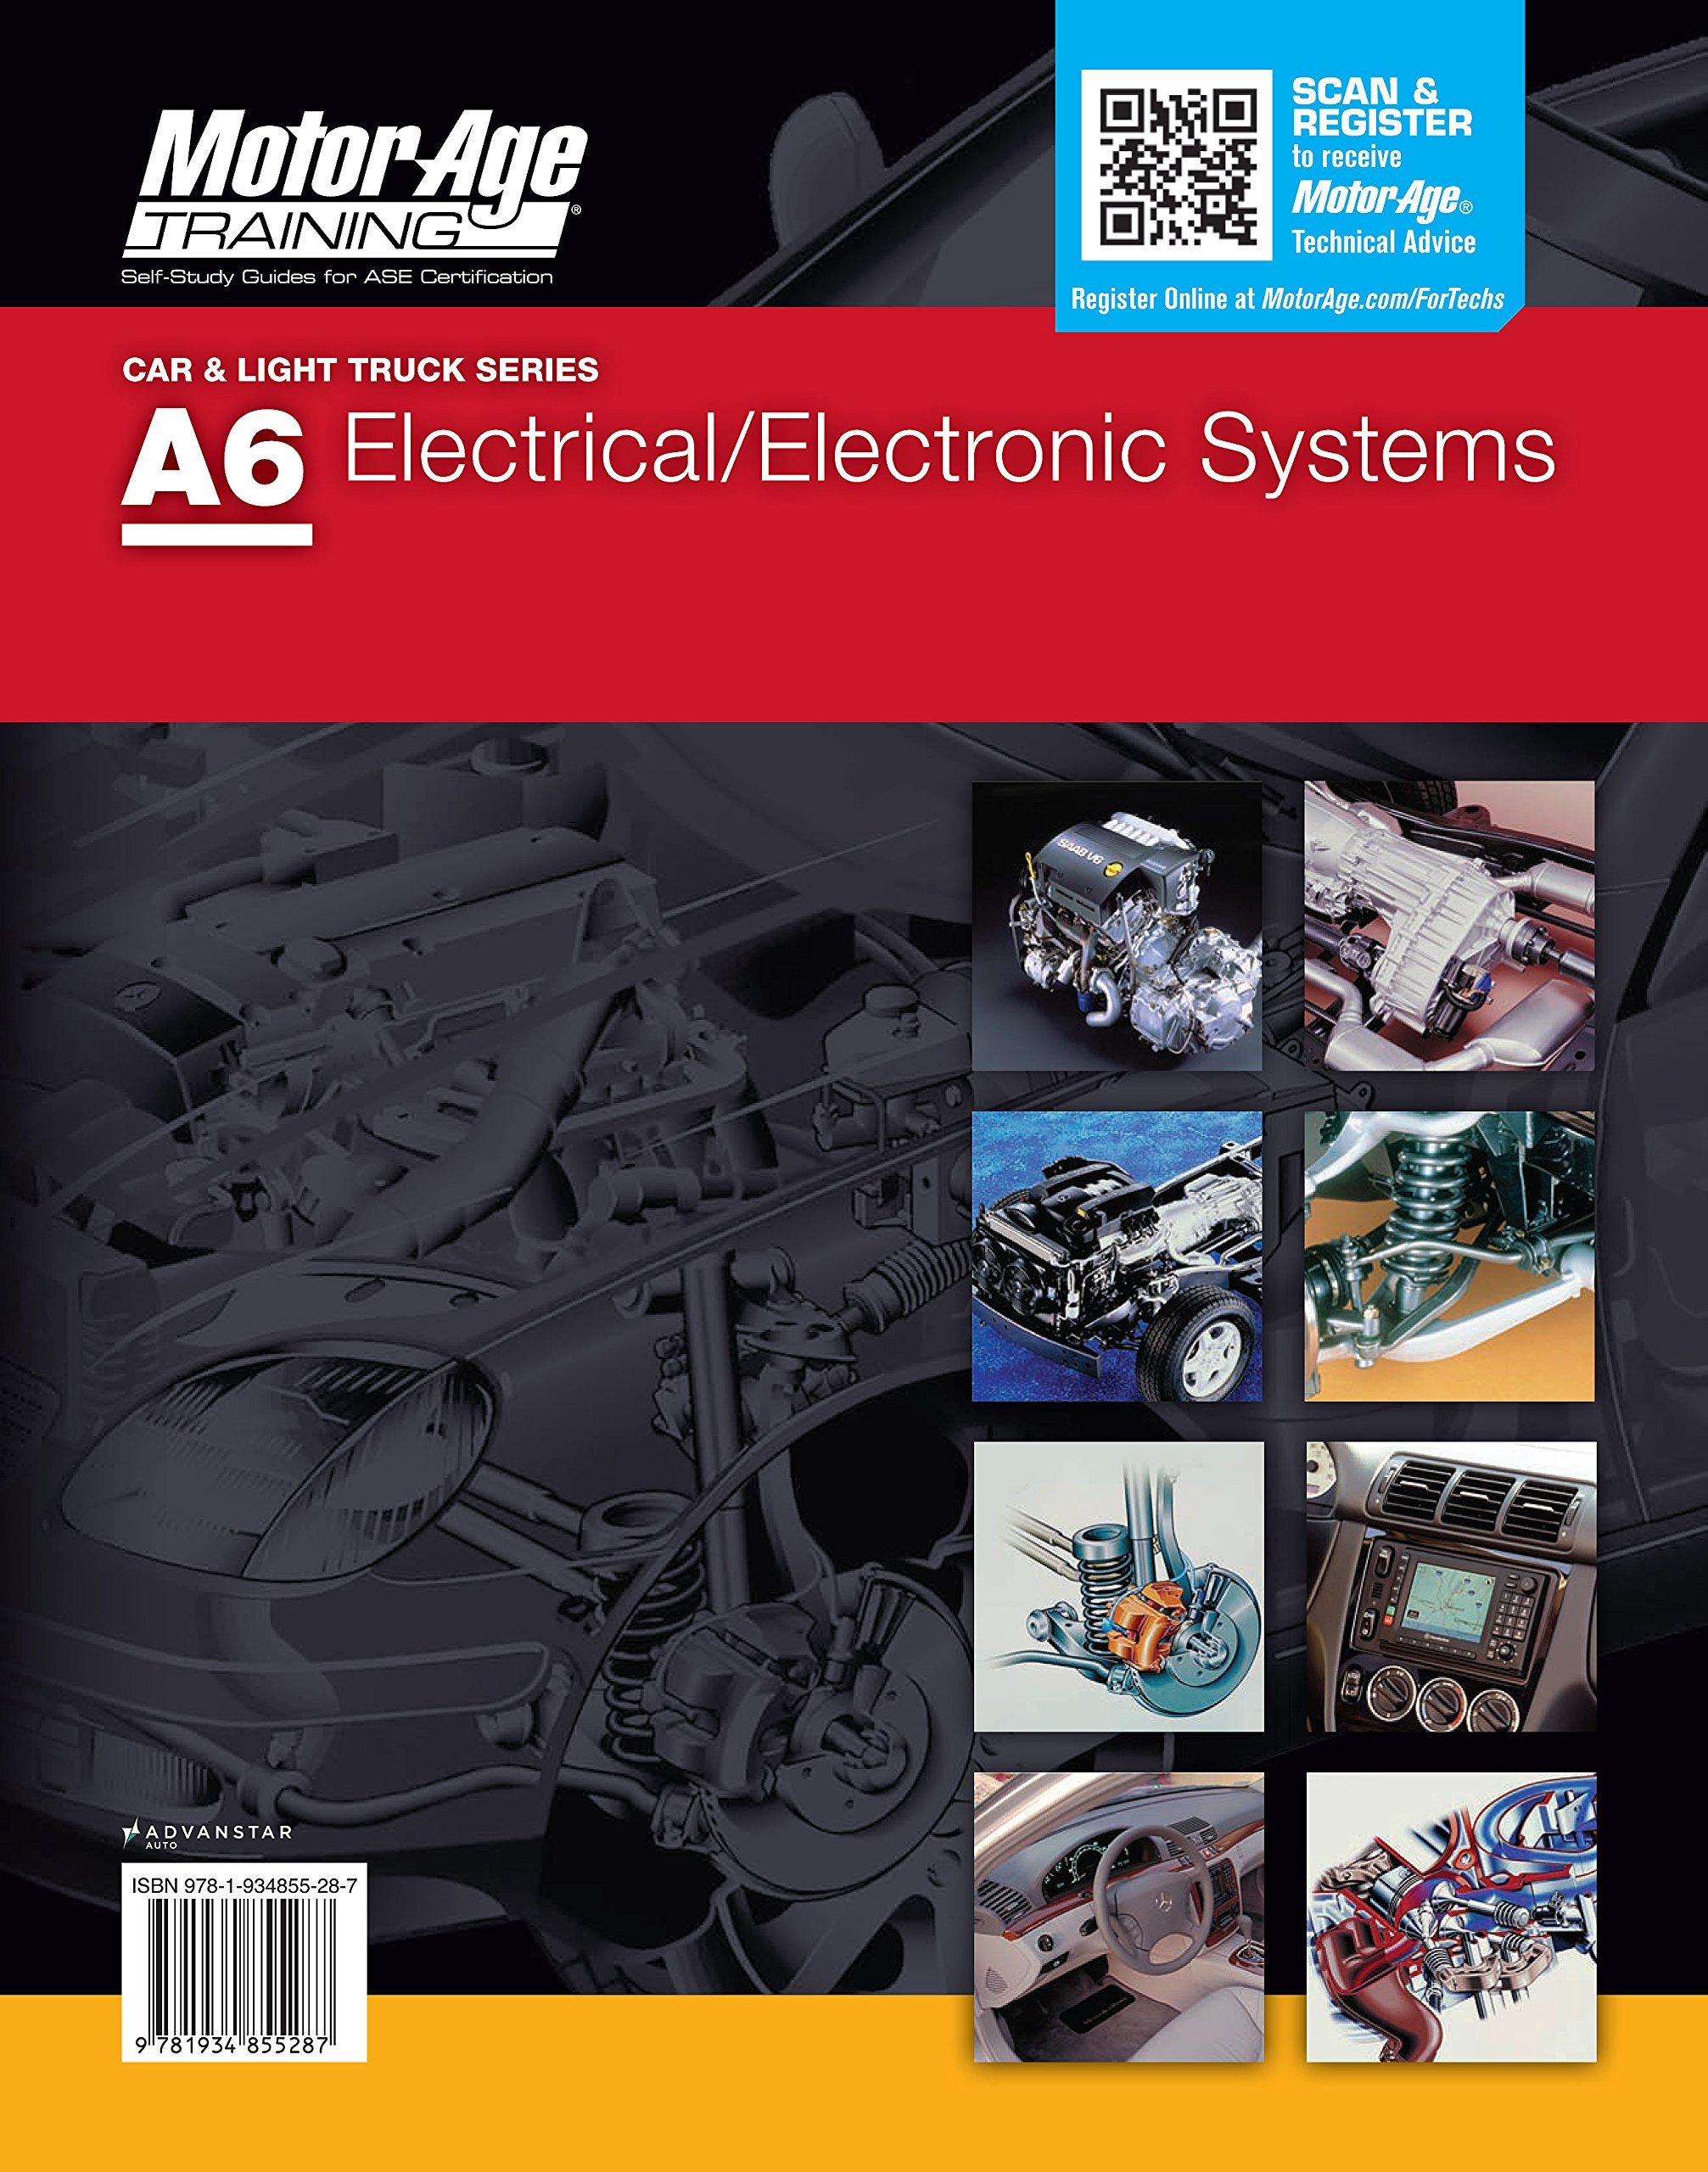 By motor age staff ase test preparation a6 electronic by motor age staff ase test preparation a6 electronic electrical systems motor age training spiral bound motor age staff 9781934855287 xflitez Images